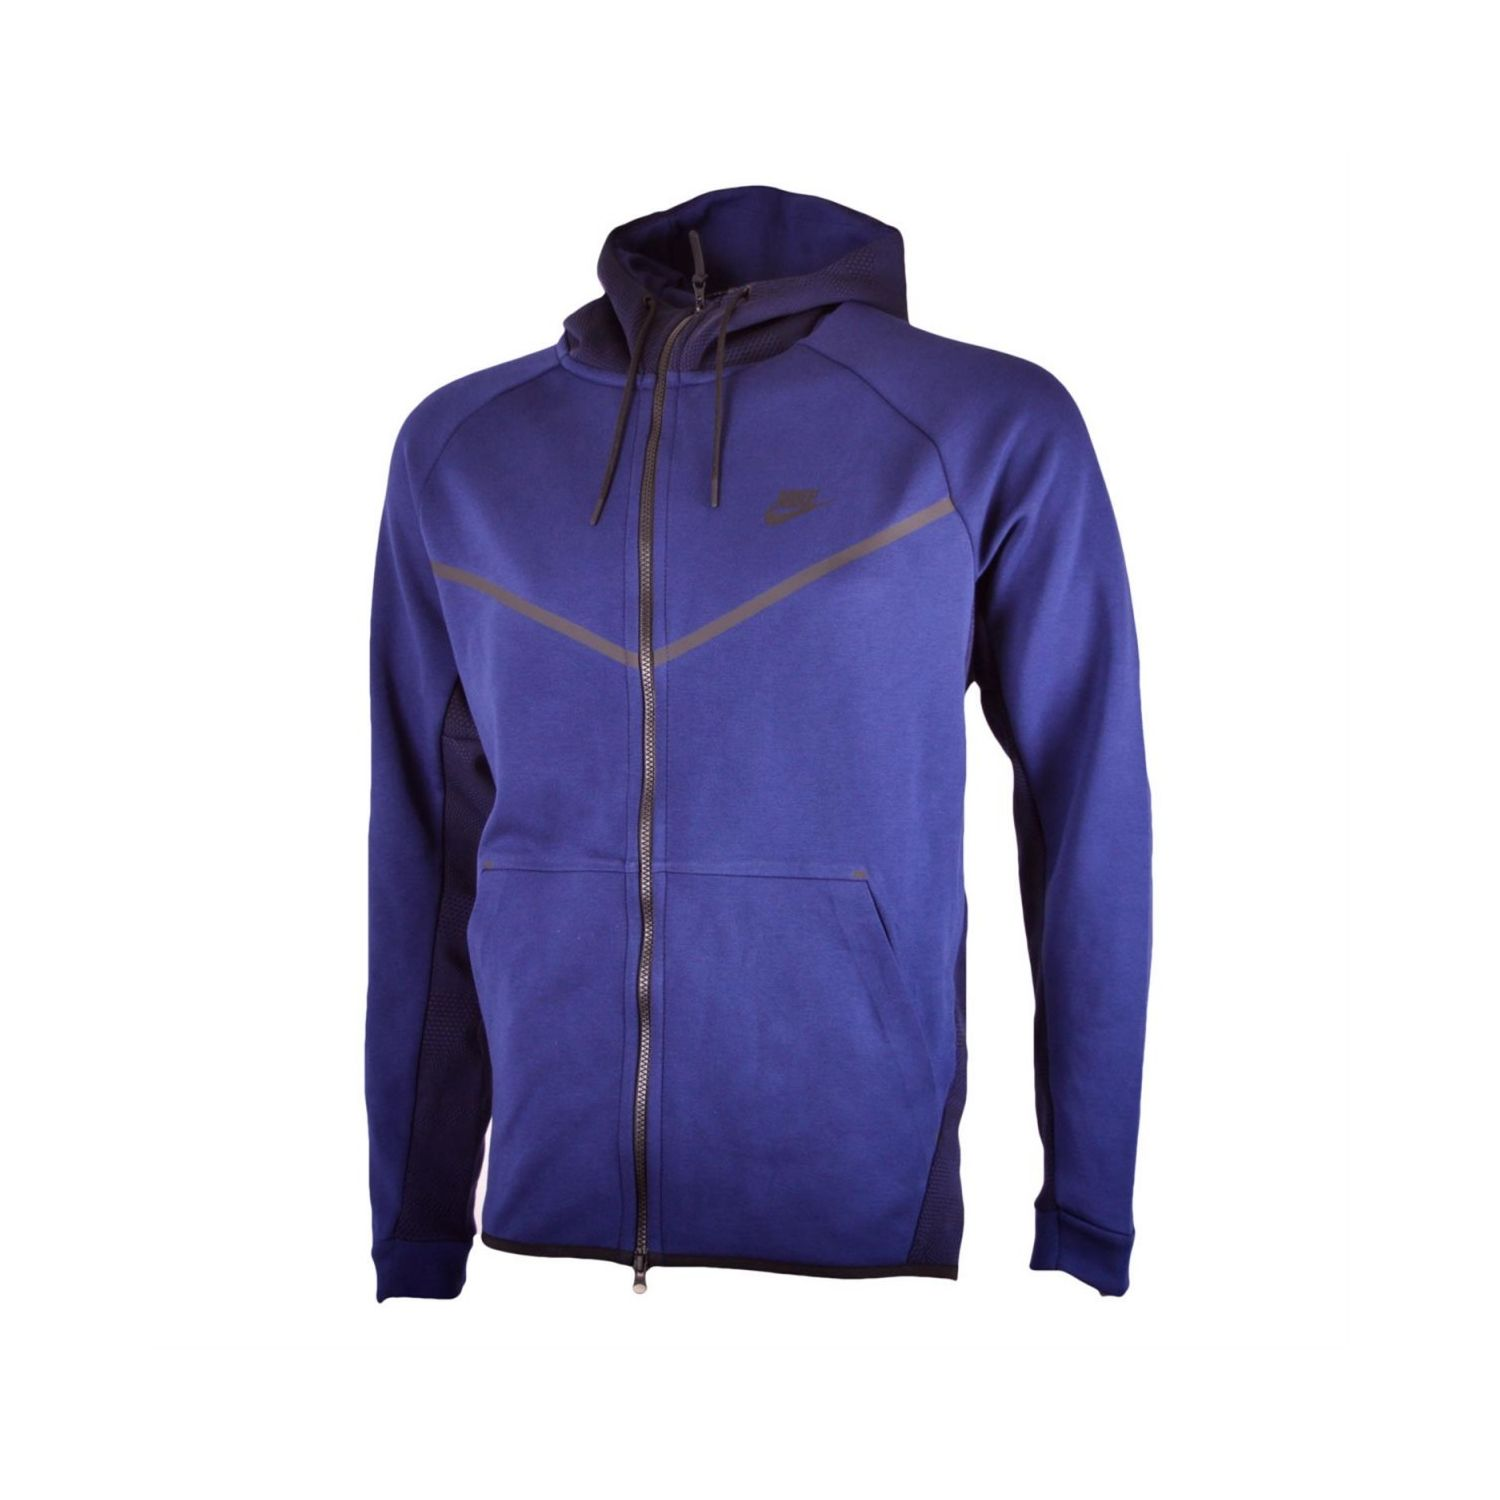 Windrunner Veste 429 836422 Tech Bleu Nike Pas Xl Fleece Htdqww7